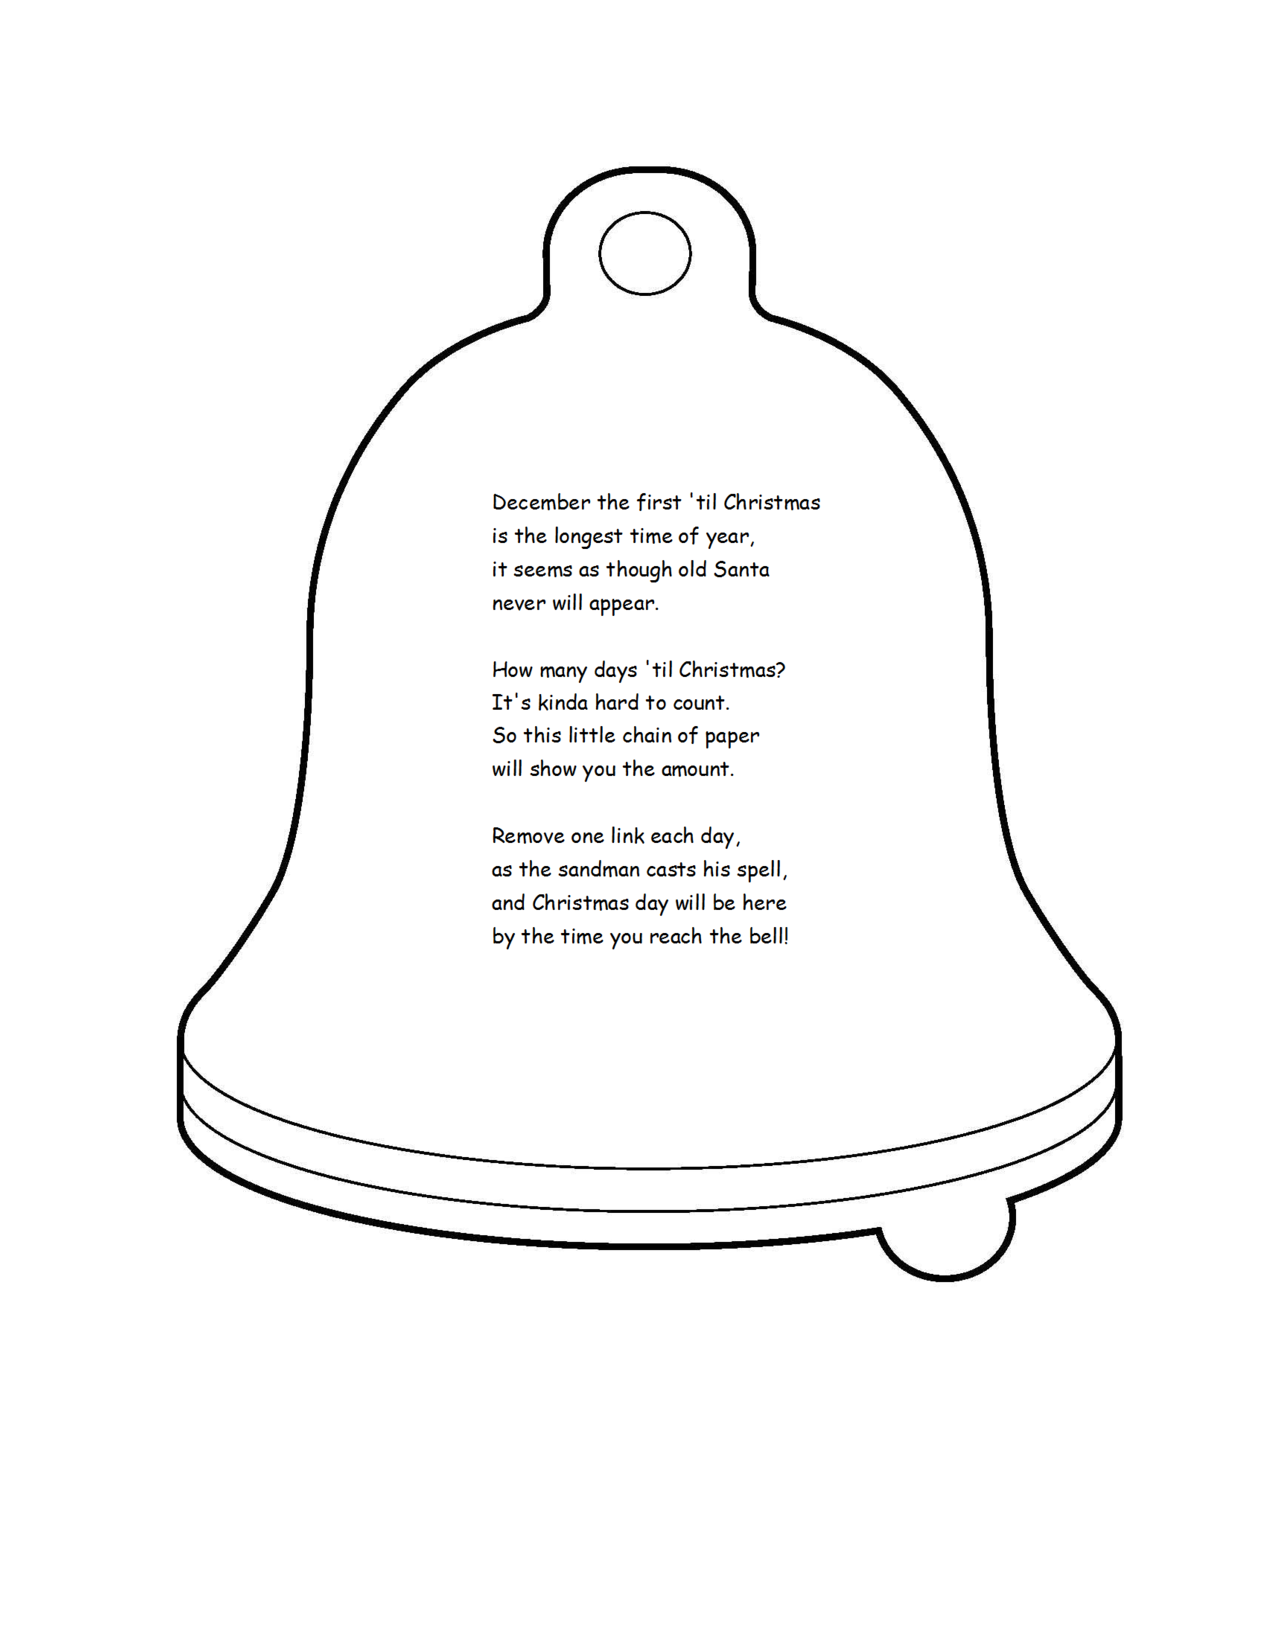 Christmas Bell Chain Poem